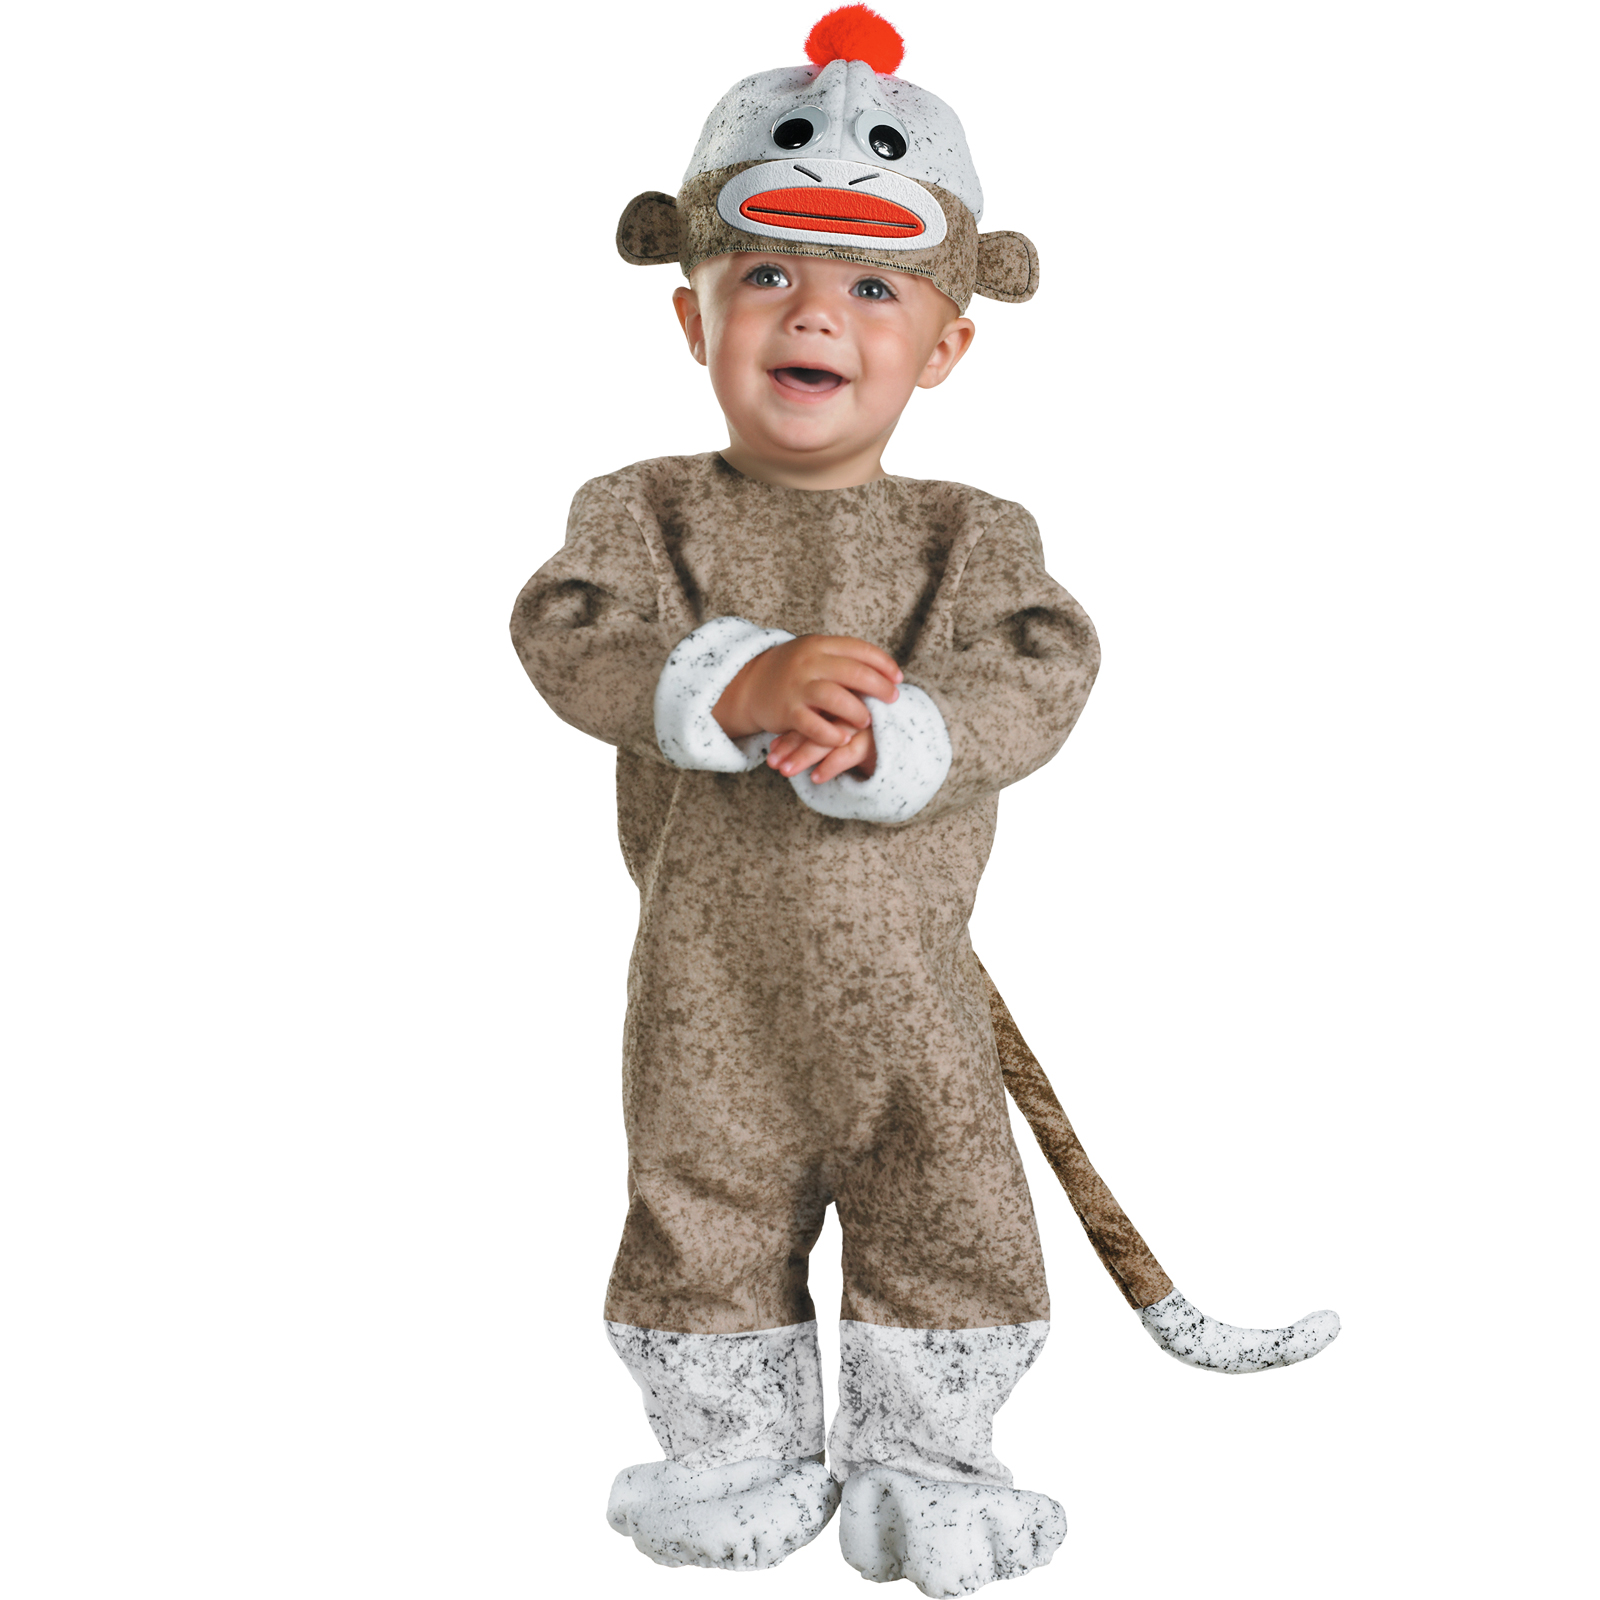 Cute Sock Monkey Infant Costume Halloween Fancy Dress